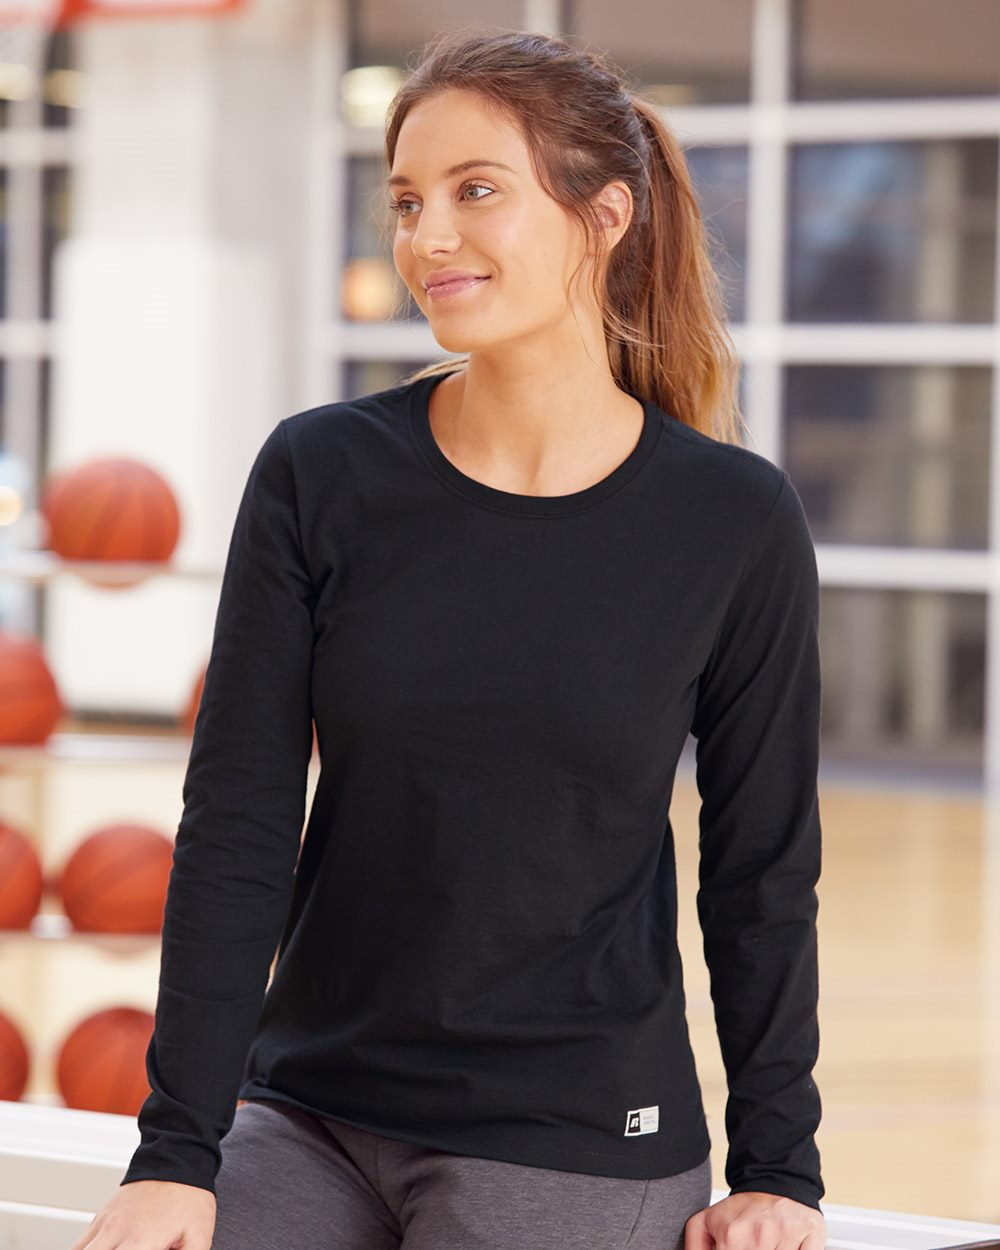 Russell Athletic Women's Essential 60/40 Performance Long Sleeve T-Shirt